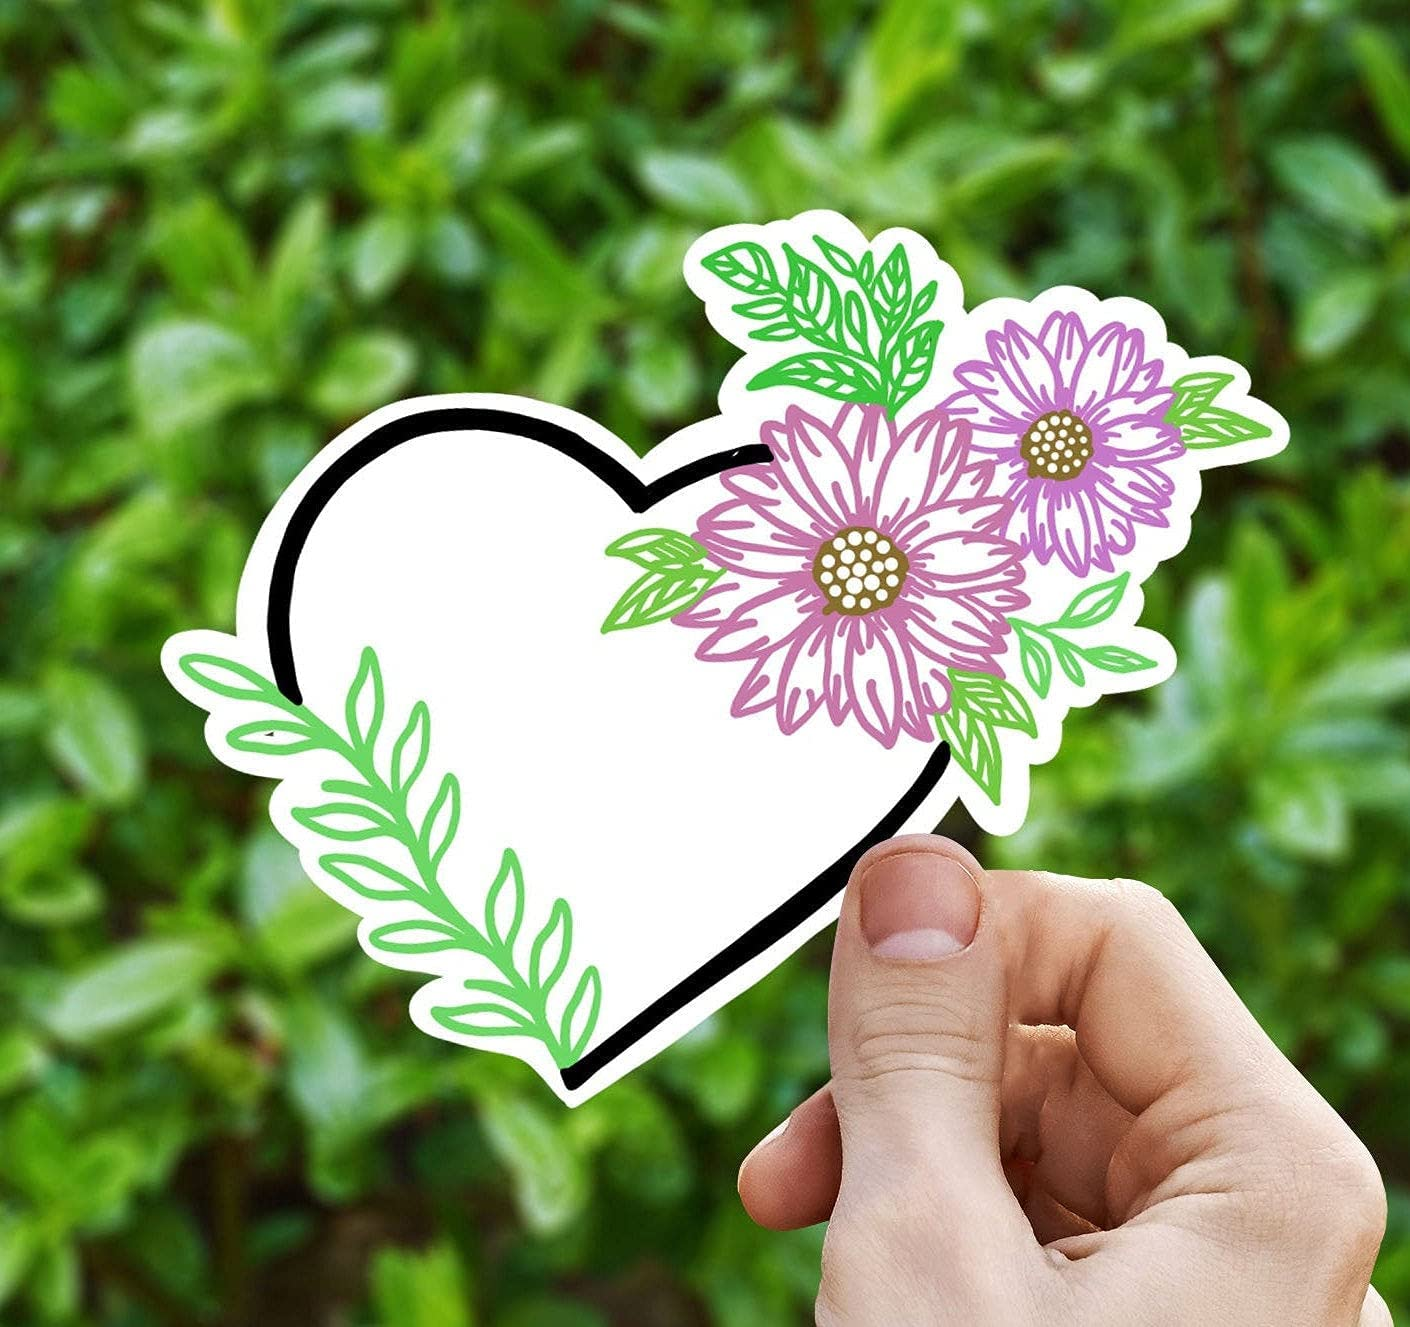 Flower Heart Vinyl Sticker Laptop Decal Yeti Don't miss the campaign Max 69% OFF